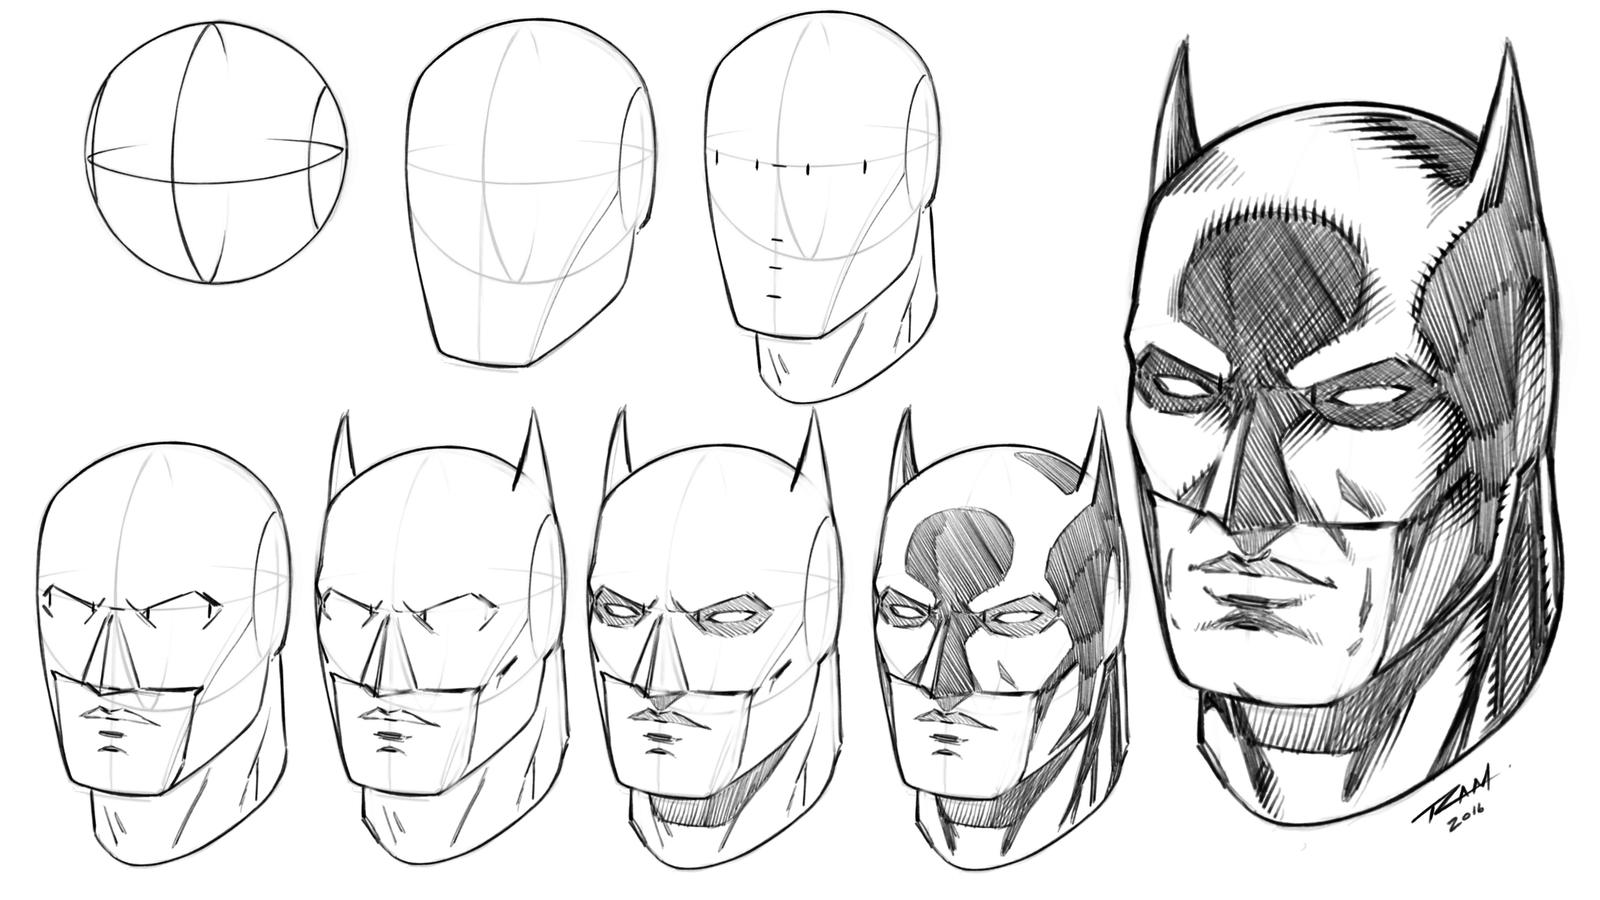 Batman mask how to draw step by step tutorial by for How to make cartoon drawings step by step